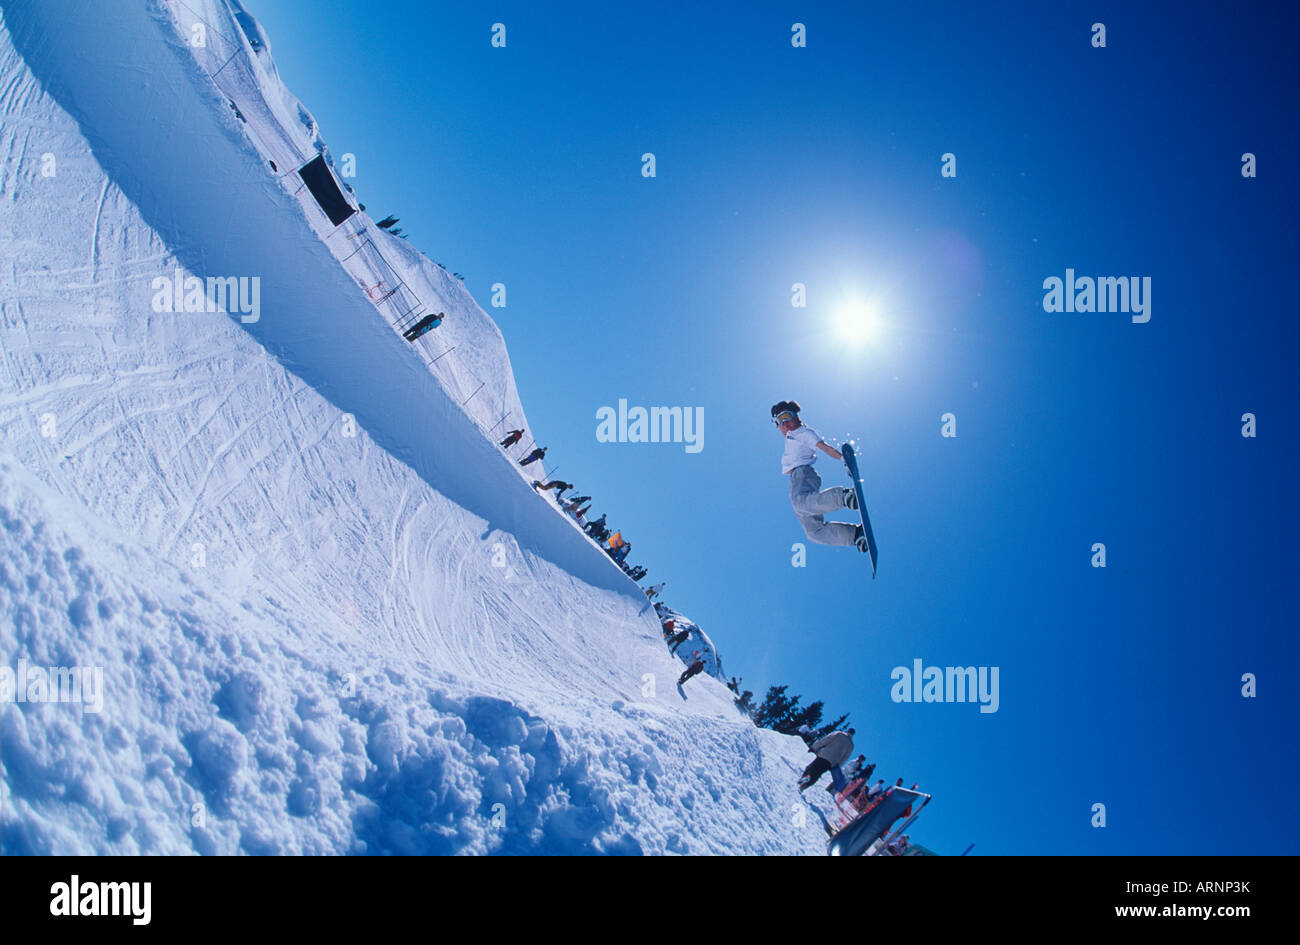 snowboarder in half pipe competition, Whistler, British Columbia, Canada. Stock Photo